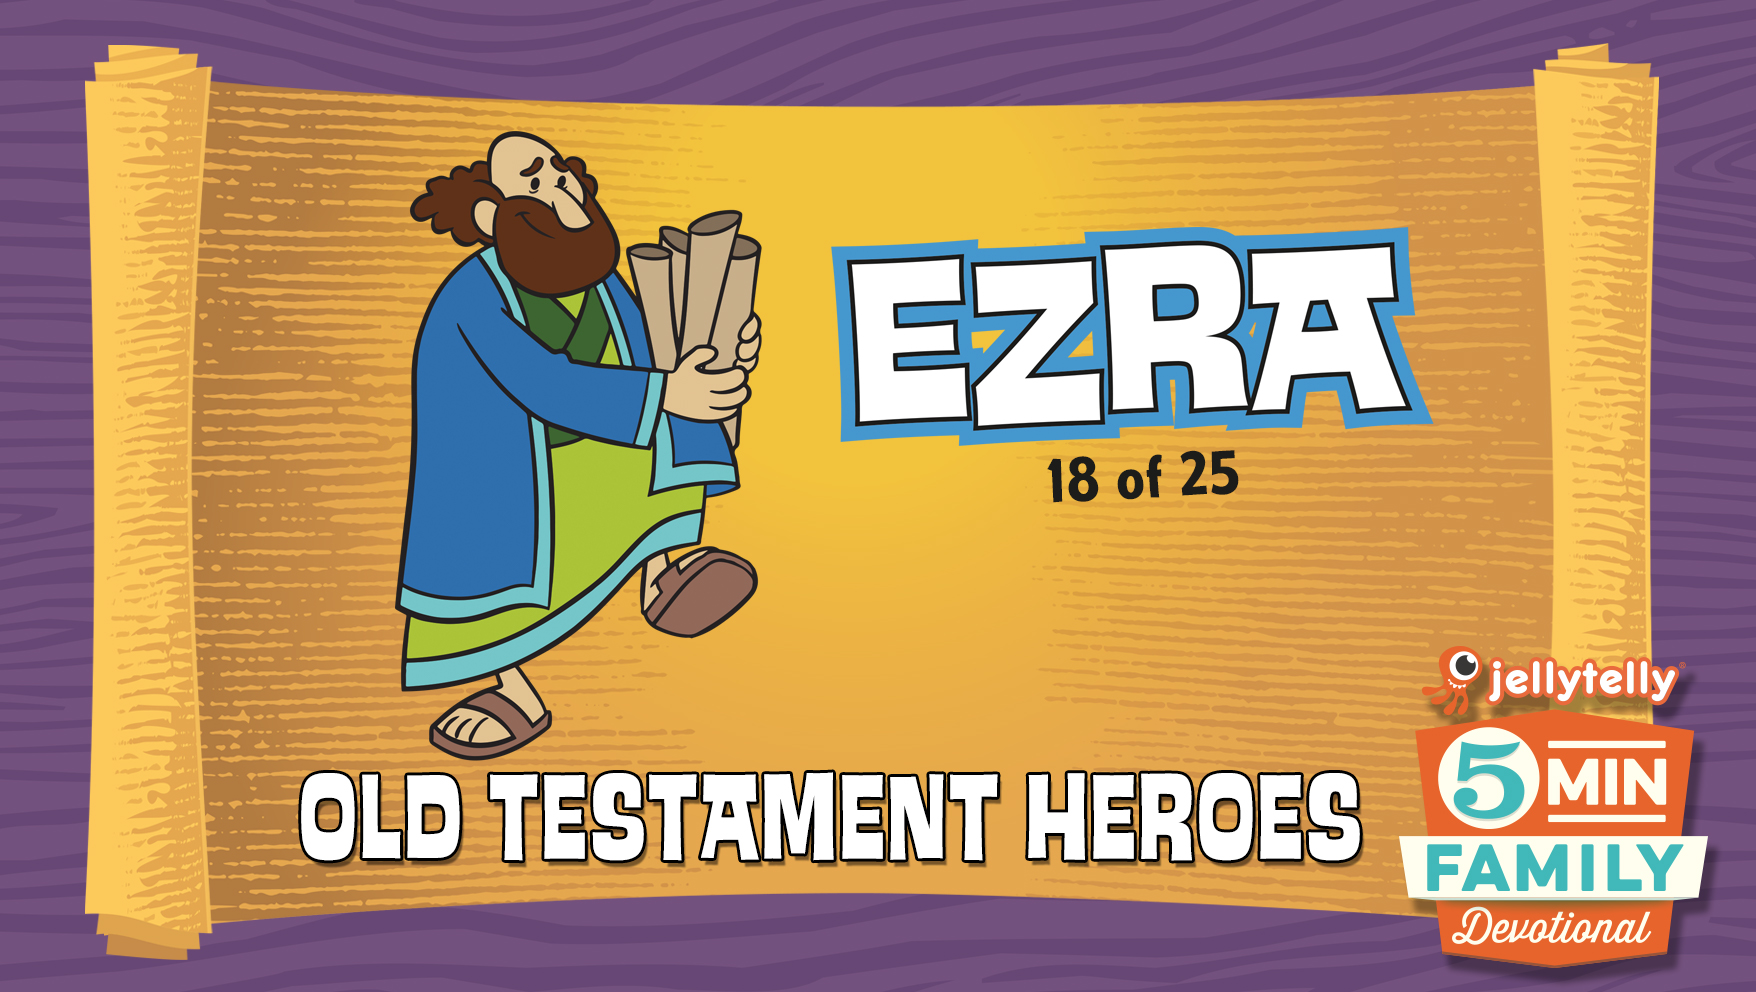 Ezra: Old Testament Heroes - 5 Minute Family Devotional